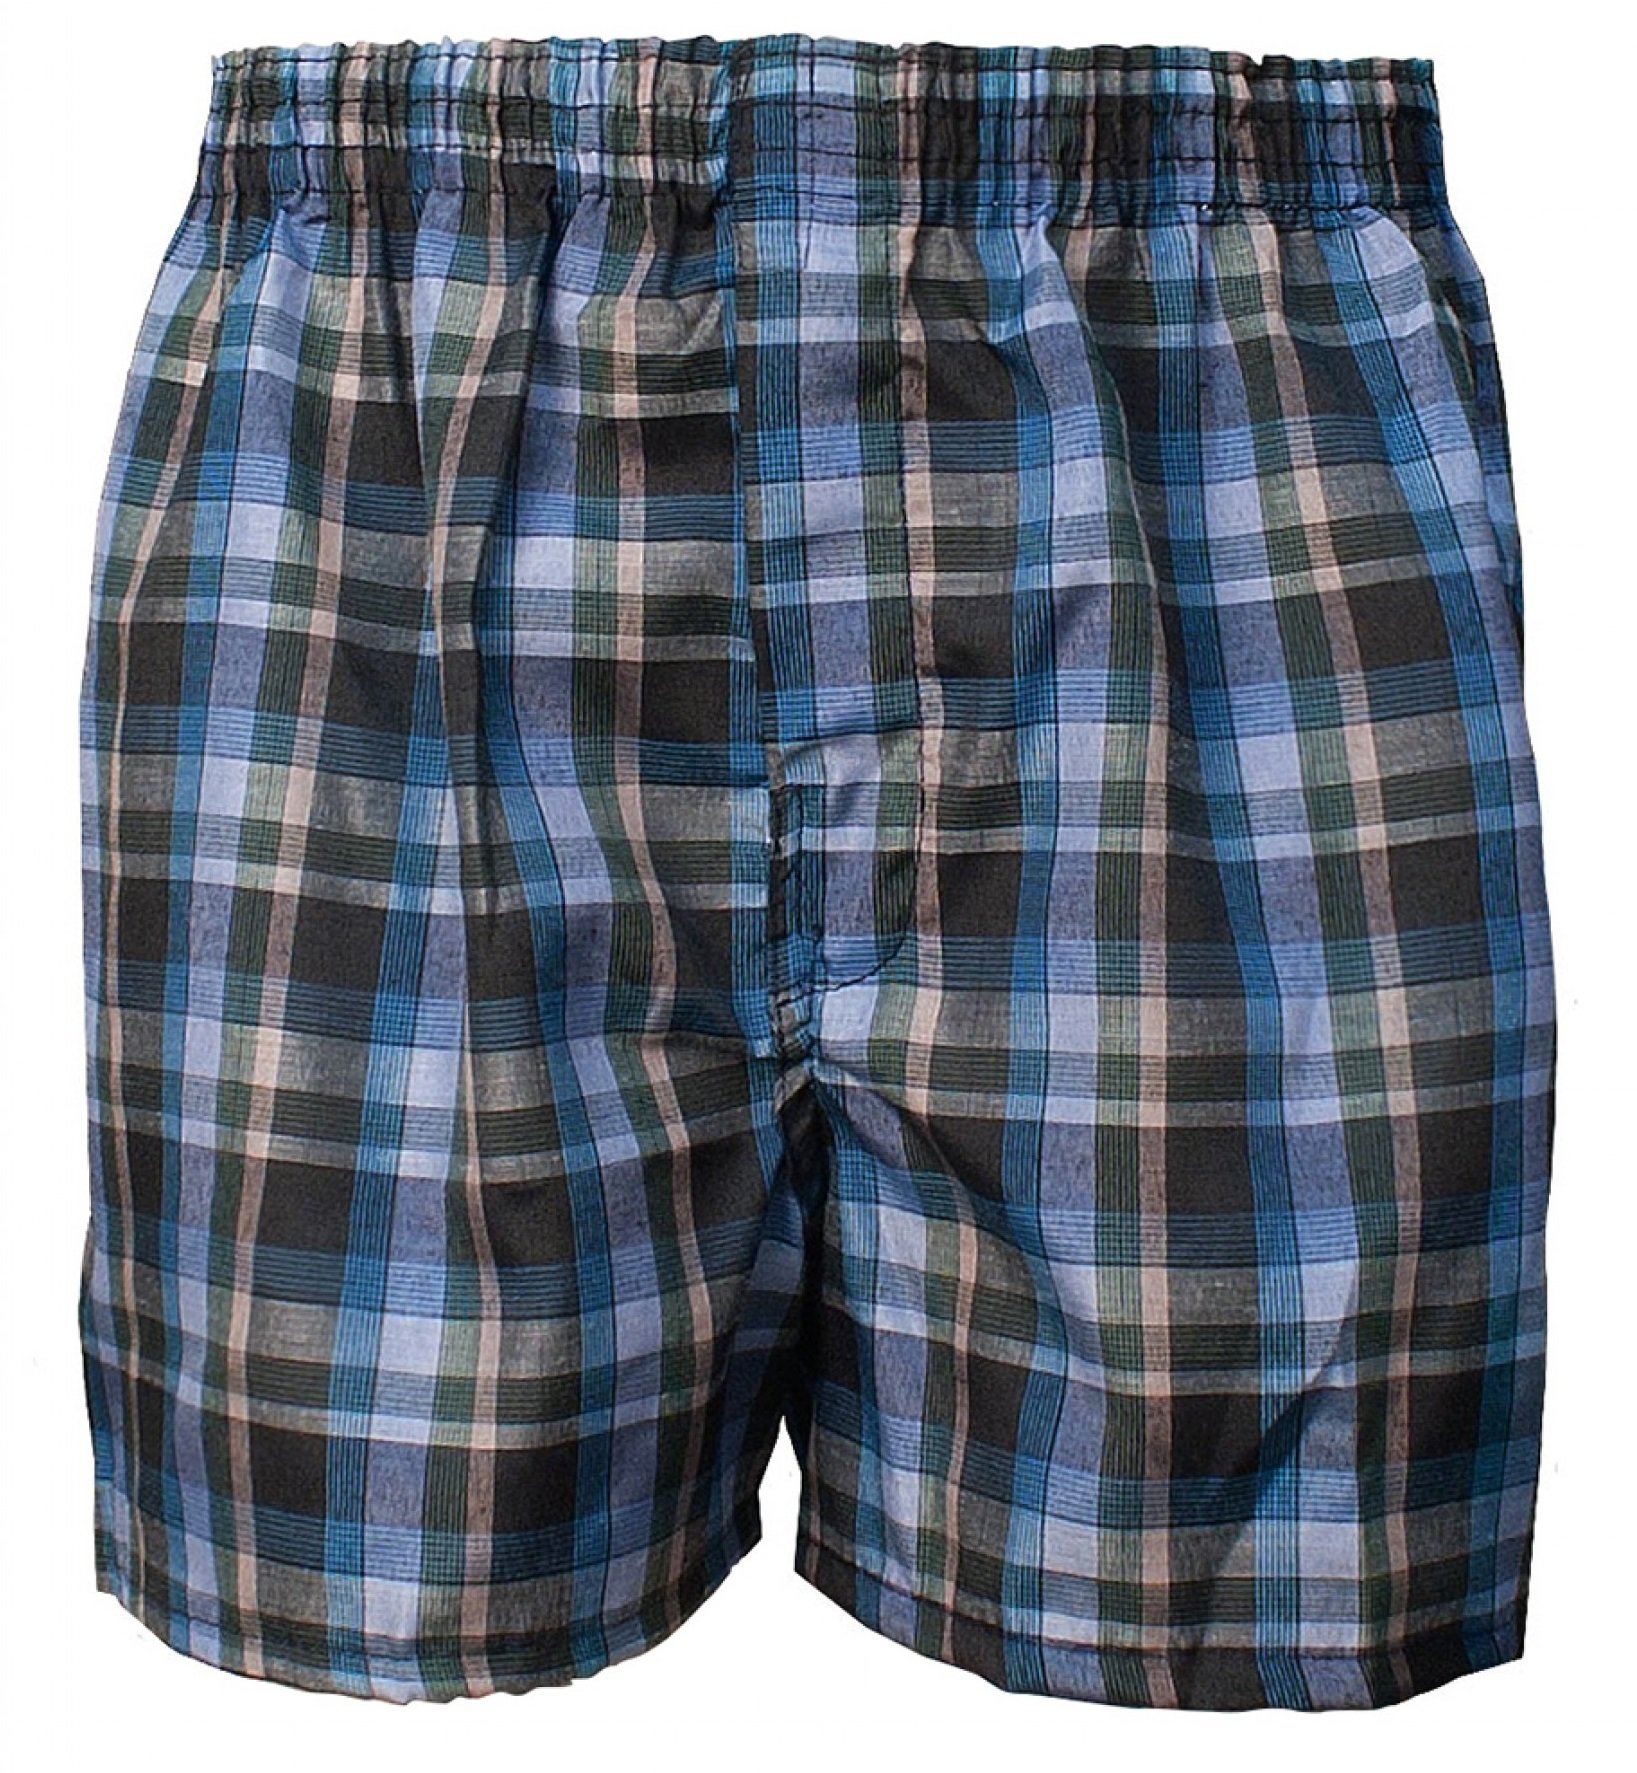 ToBeInStyle Boys' Pack of 6 Tartan Patterned Boxer Shorts - Medium by ToBeInStyle (Image #2)